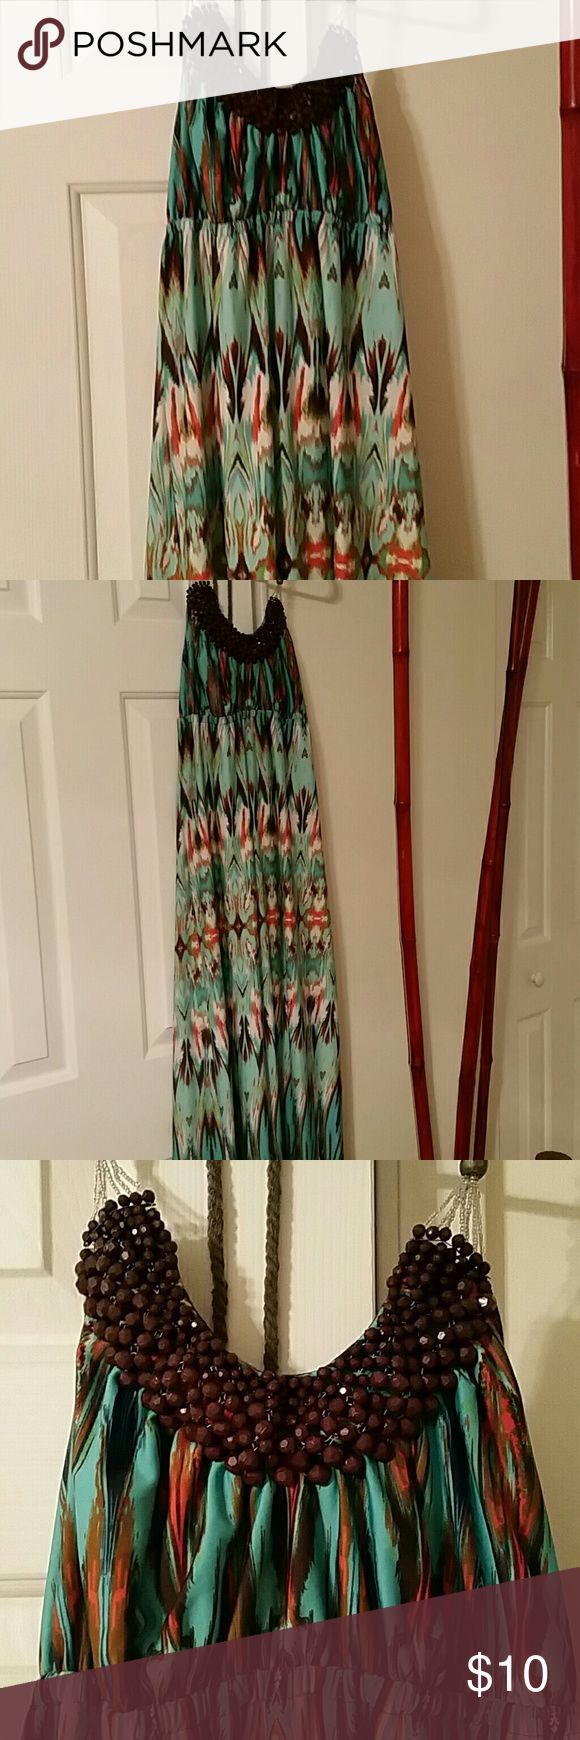 Maxi dress Beautiful beaded neckline orange, teal and brown maxi dress. Ties around the neck, halter style. Size medium. Like new. Dresses Maxi